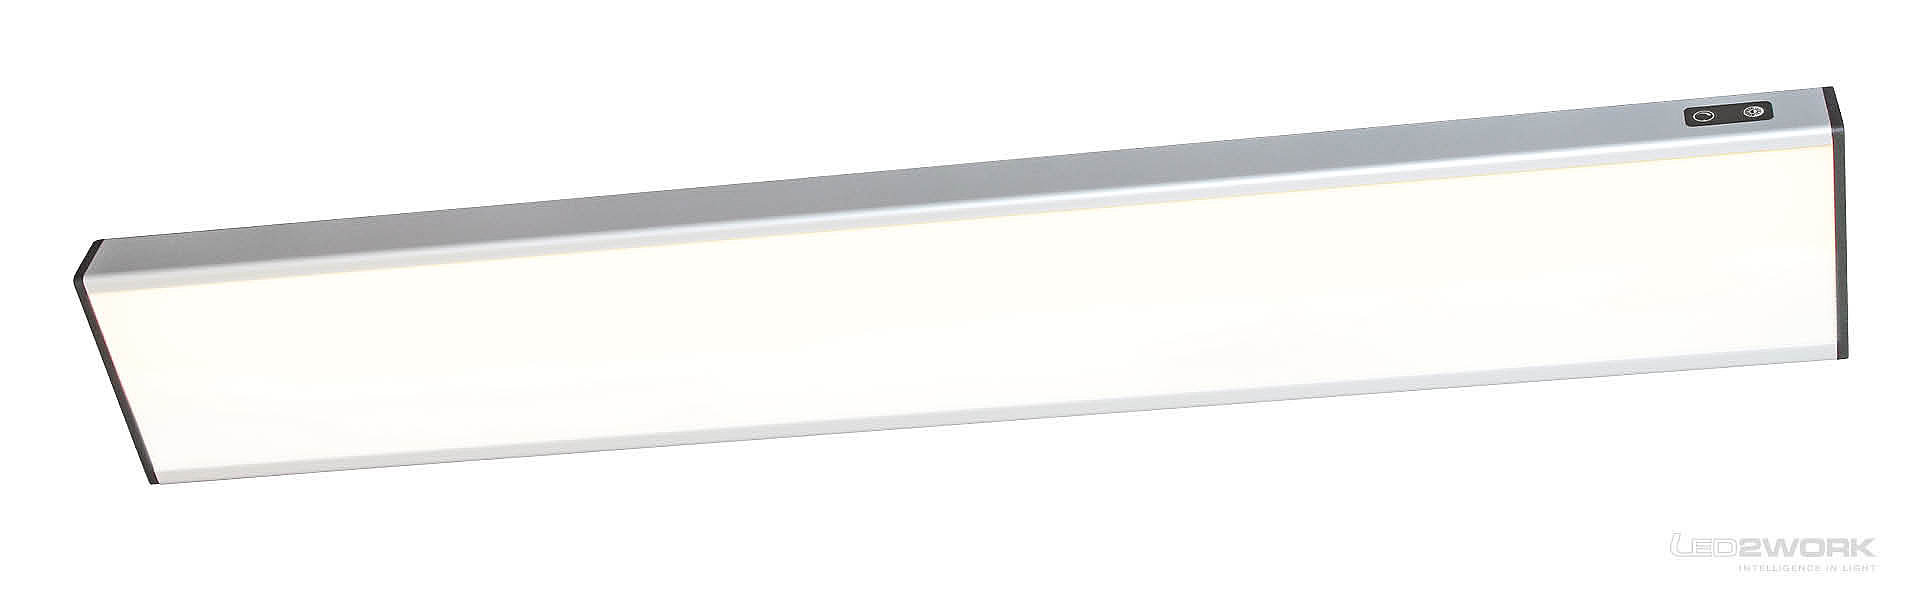 systemled tunable white led system